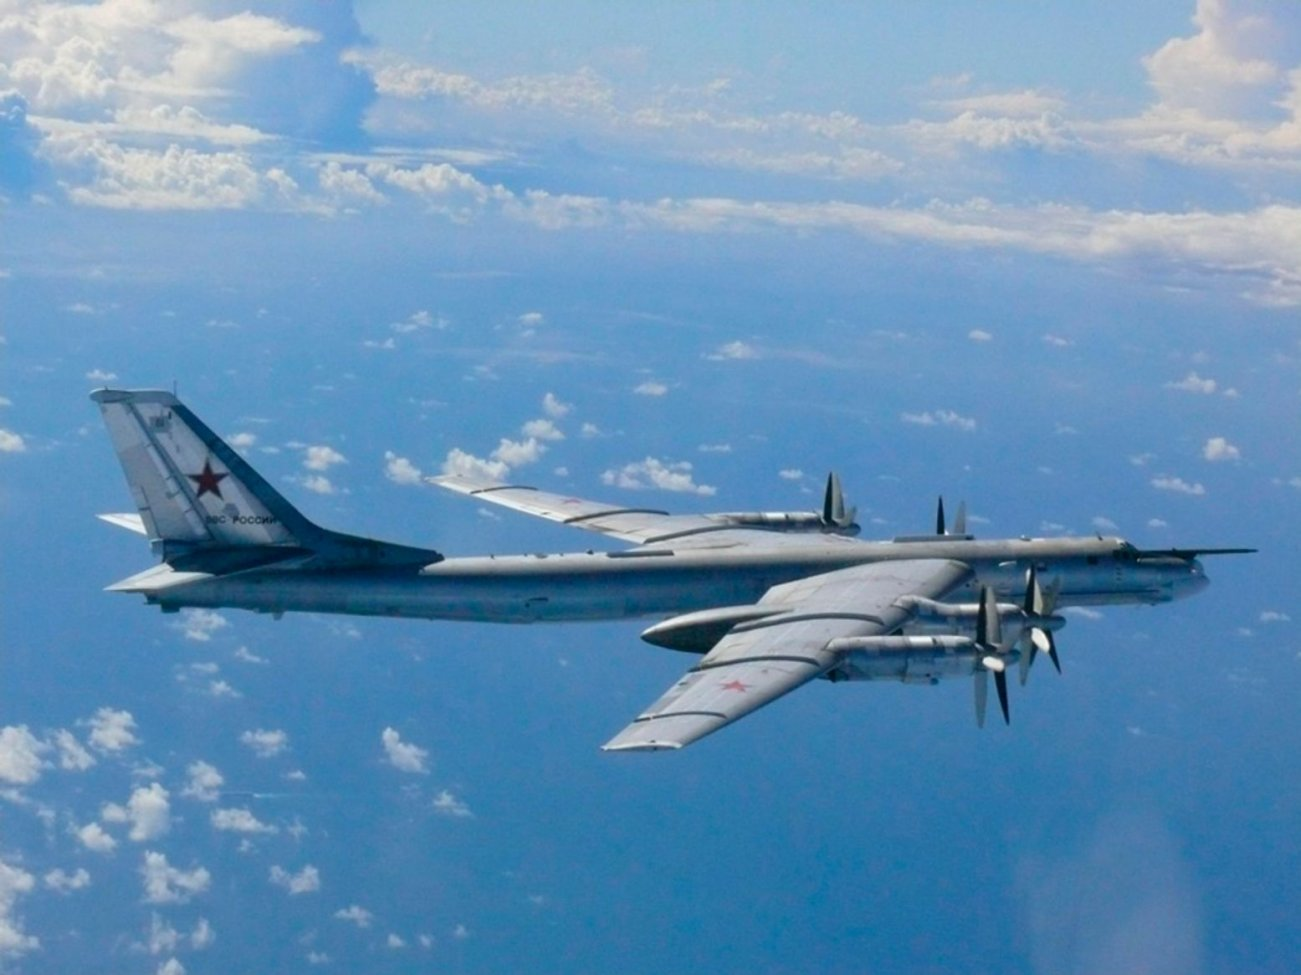 Learn About Russia's 'Version' of the B-52 Bomber